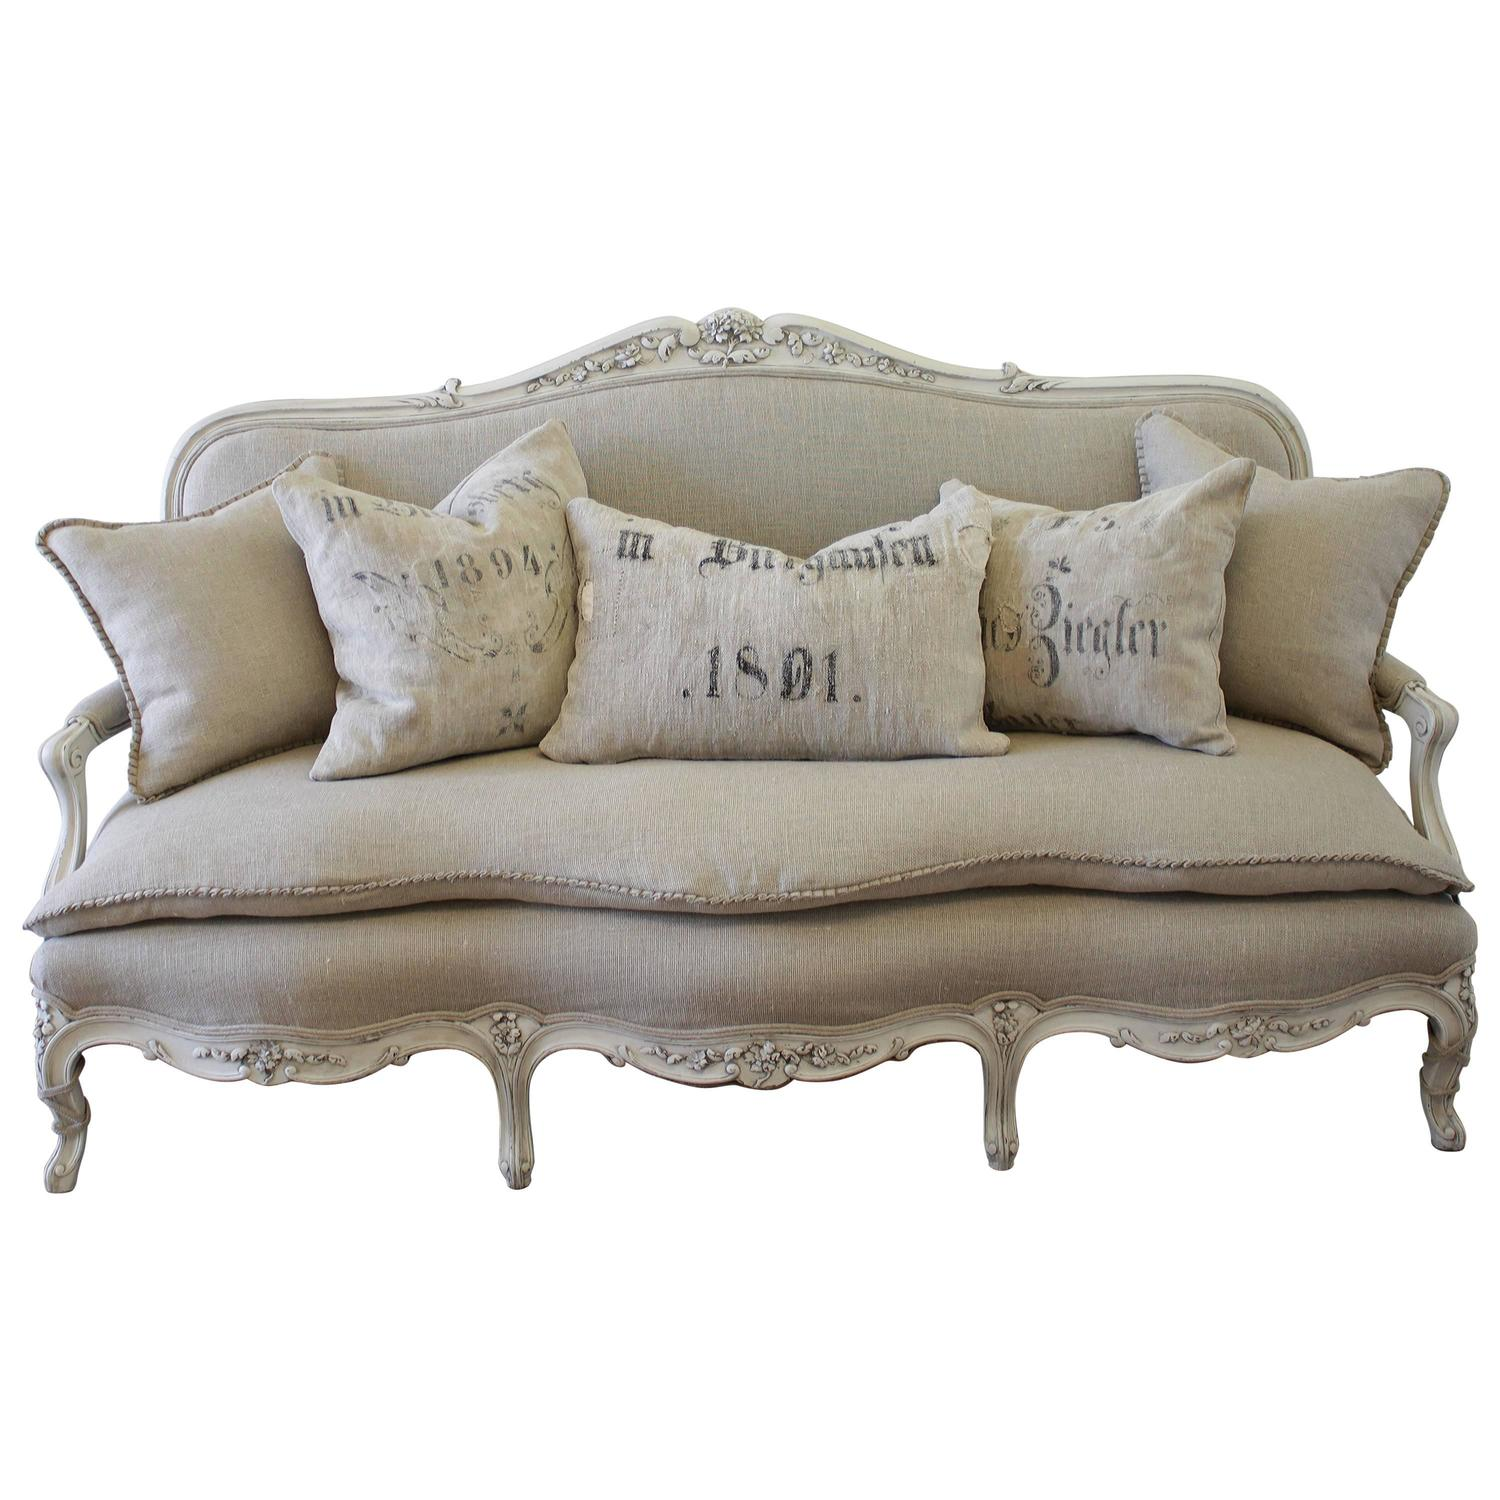 Antique Painted French Country Louis Xv Style Sofa Settee In Irish Linen At 1stdibs